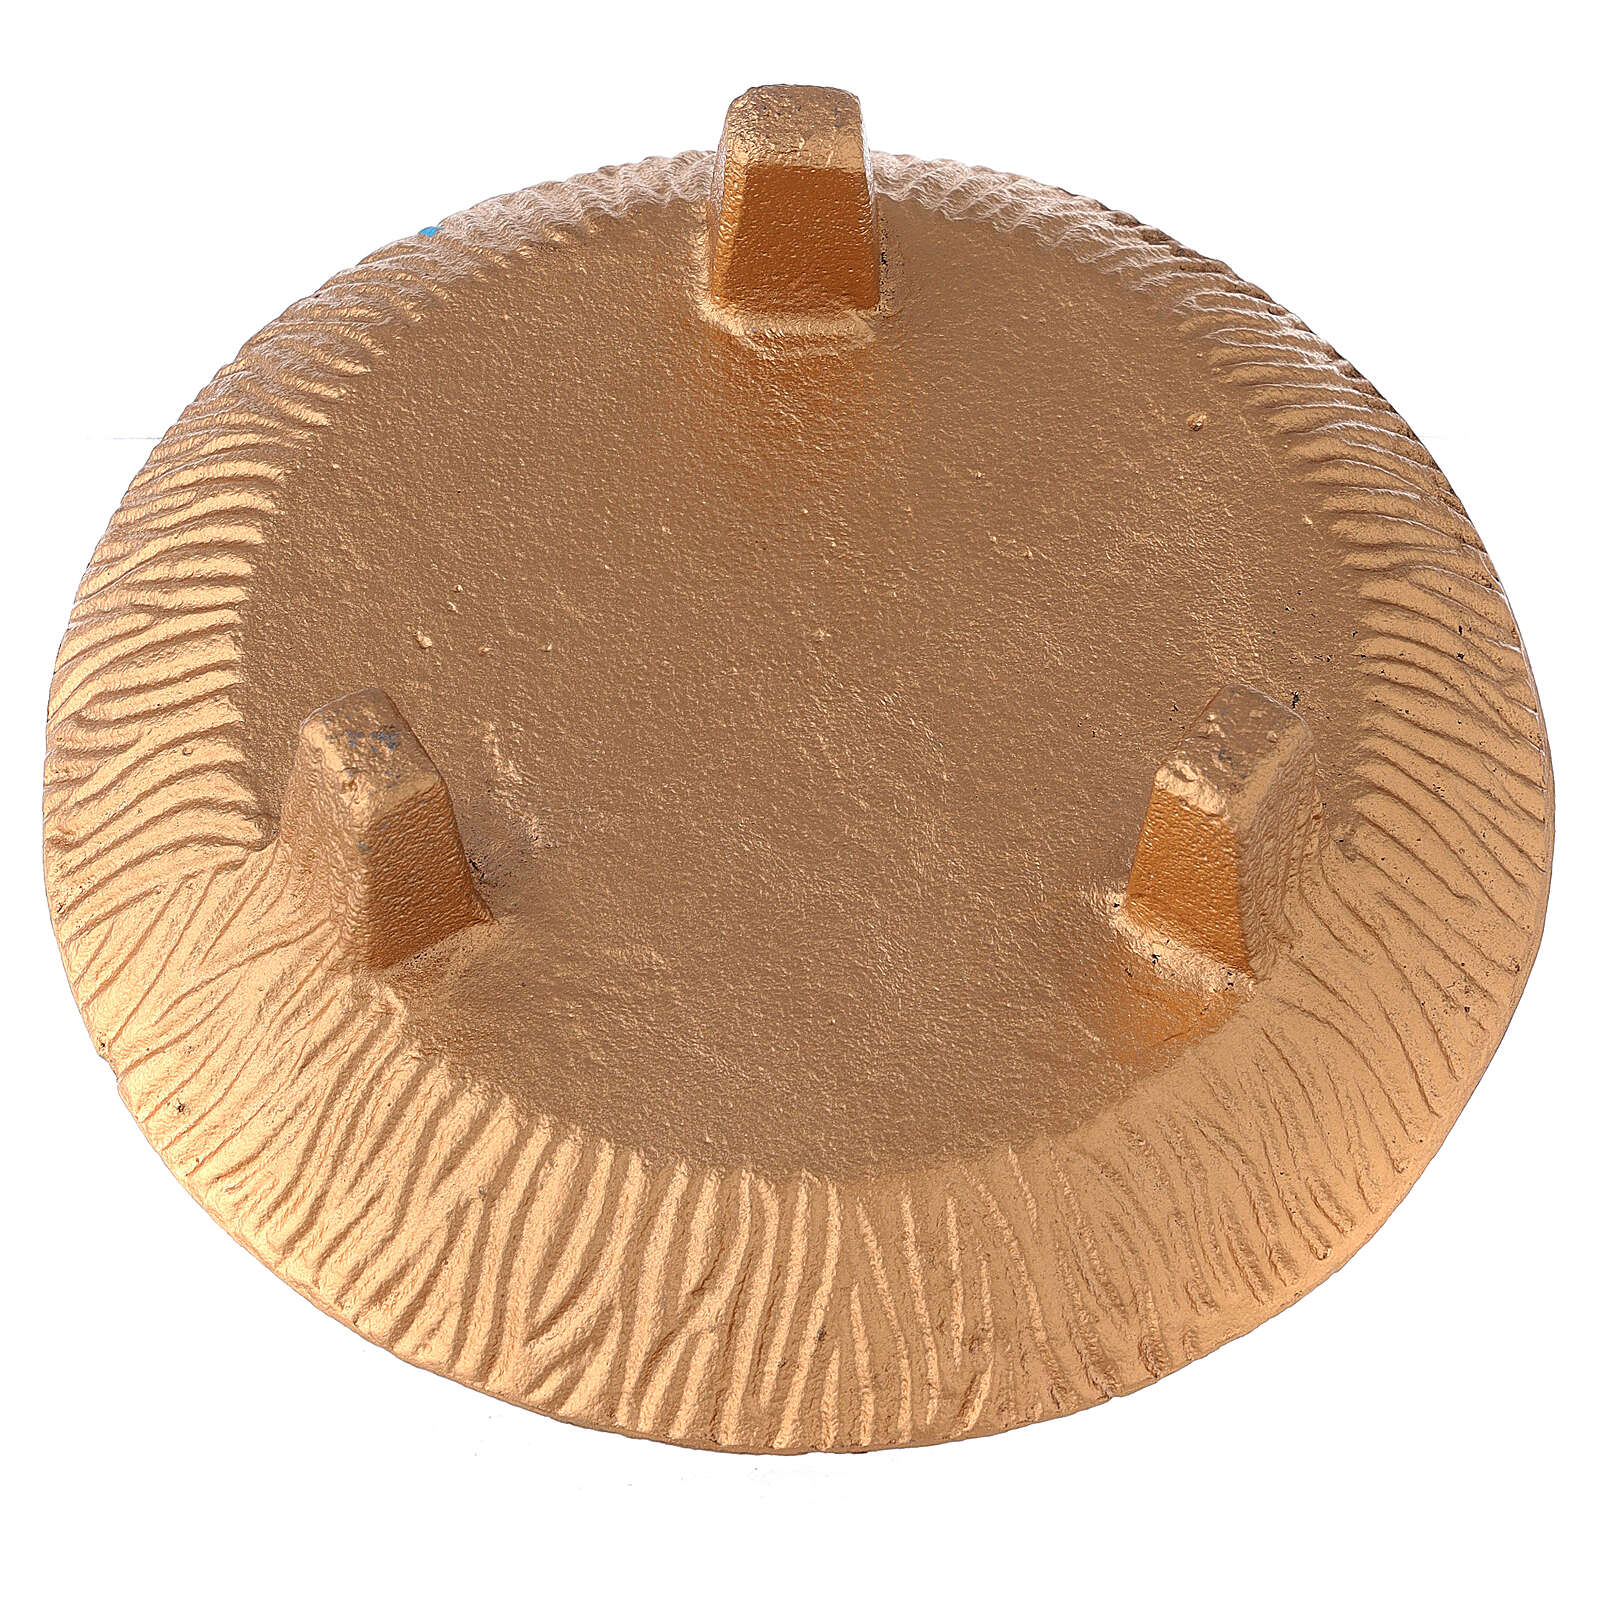 Incense bowl 7 in burnished gold painted aluminium 3